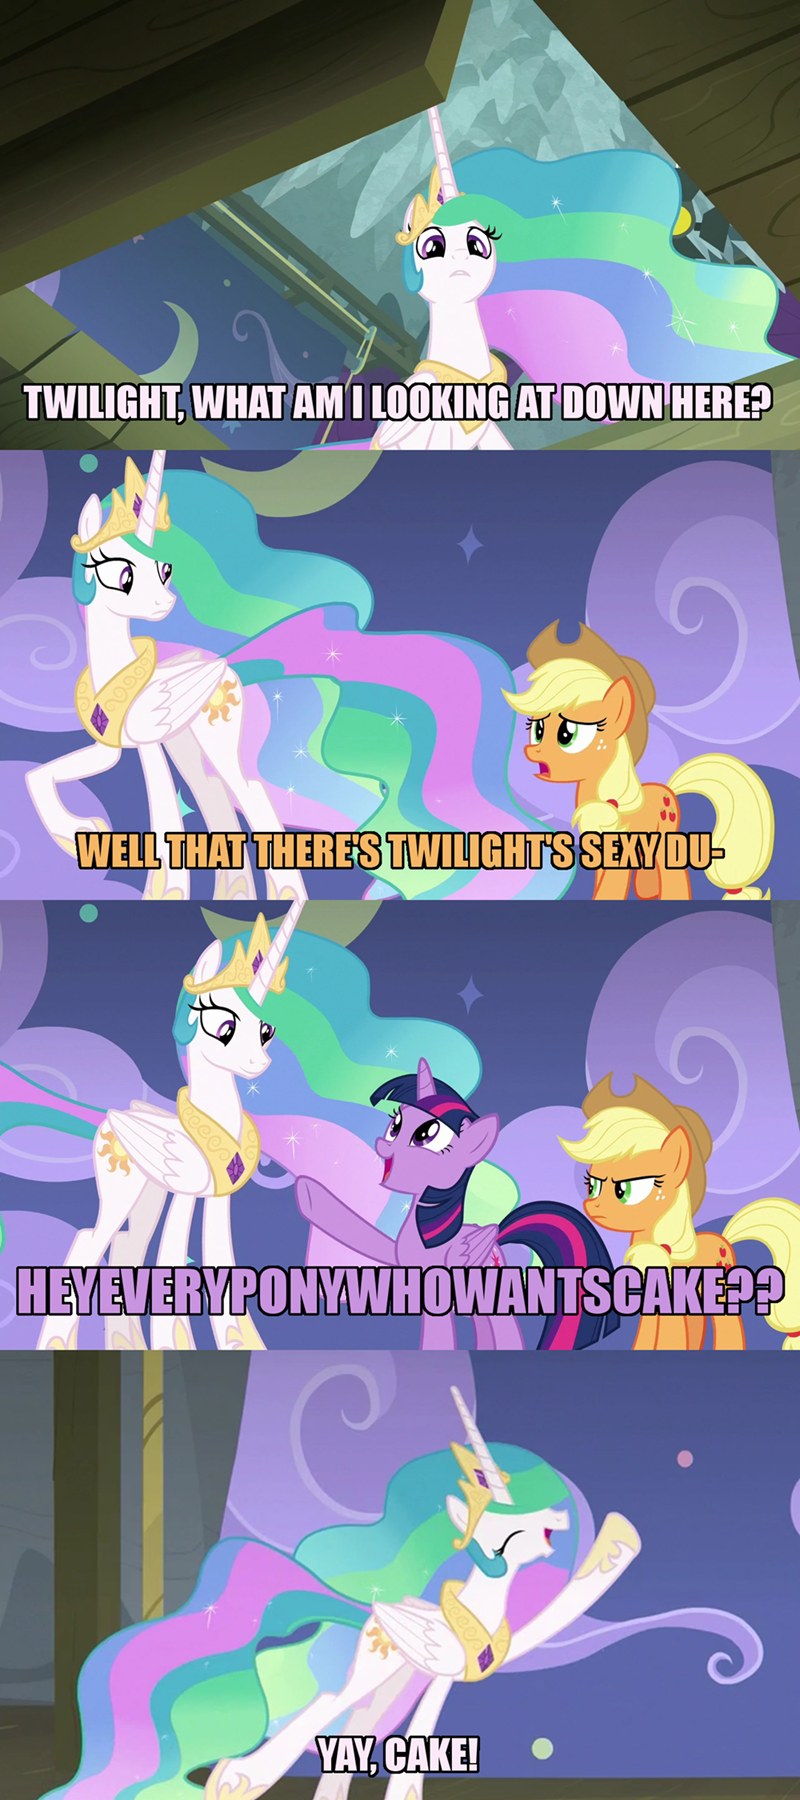 horse play applejack twilight sparkle screencap comic princess celestia - 9157979648